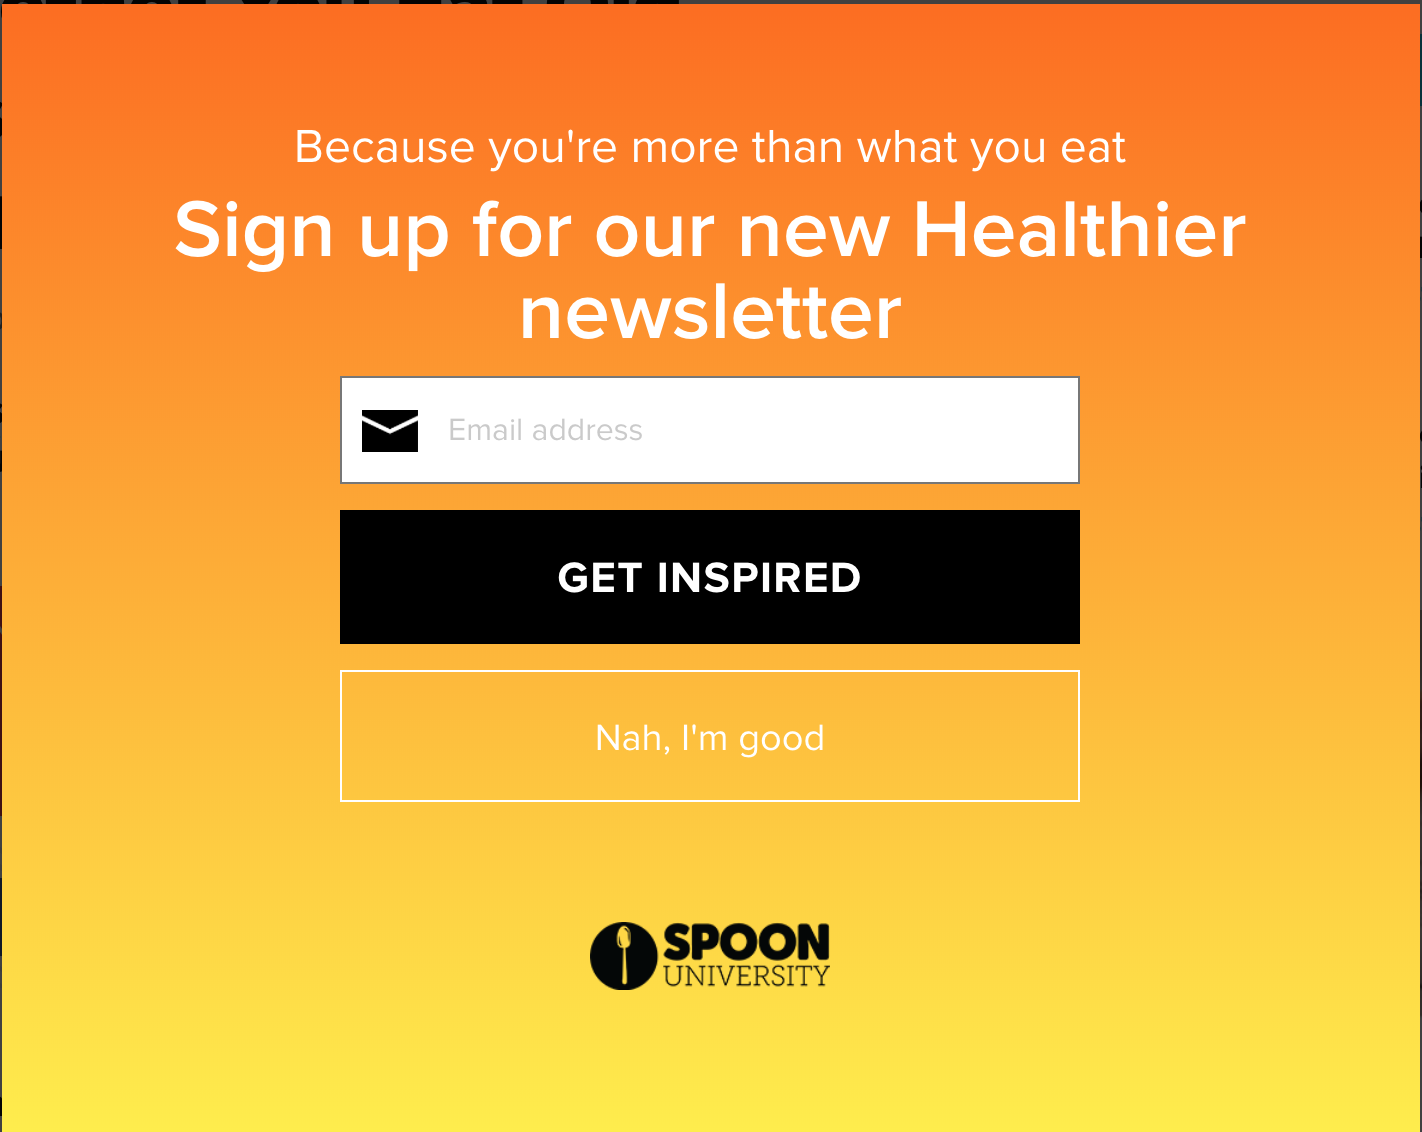 unique creative clever call to action examples nah i'm good Spoon University